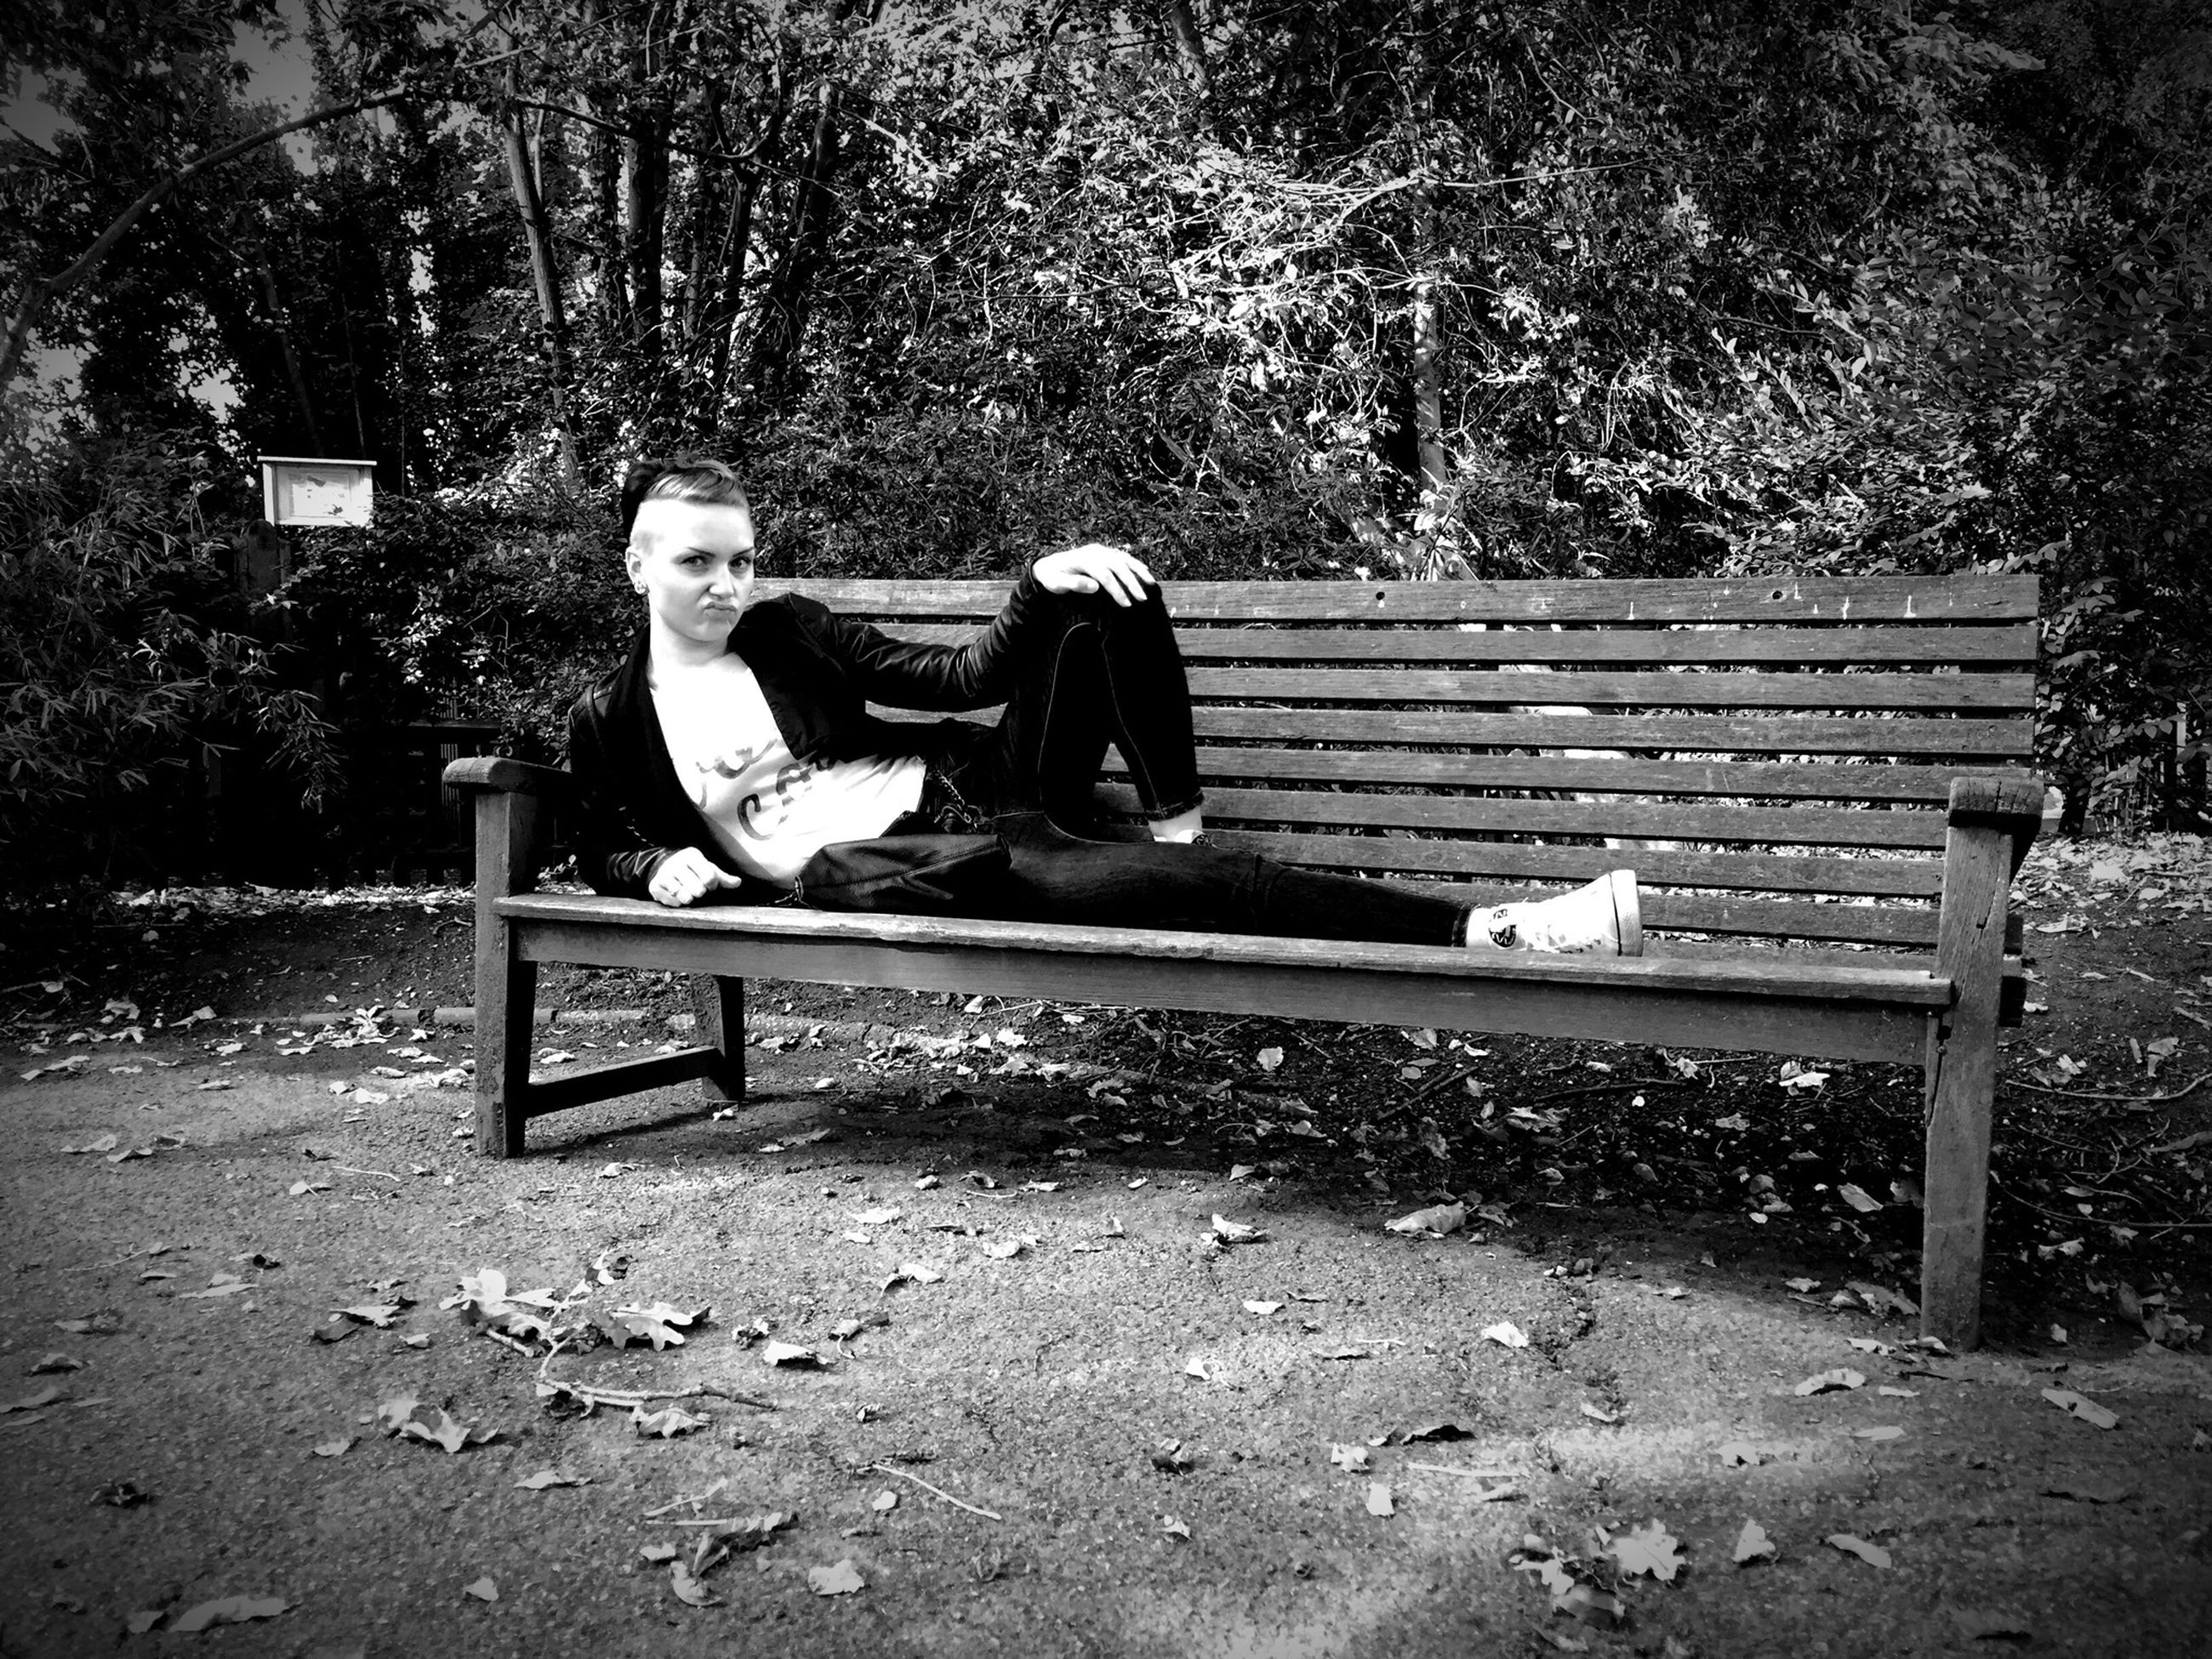 tree, bench, sitting, park bench, full length, park - man made space, relaxation, chair, empty, sunlight, seat, day, lifestyles, outdoors, nature, childhood, leisure activity, absence